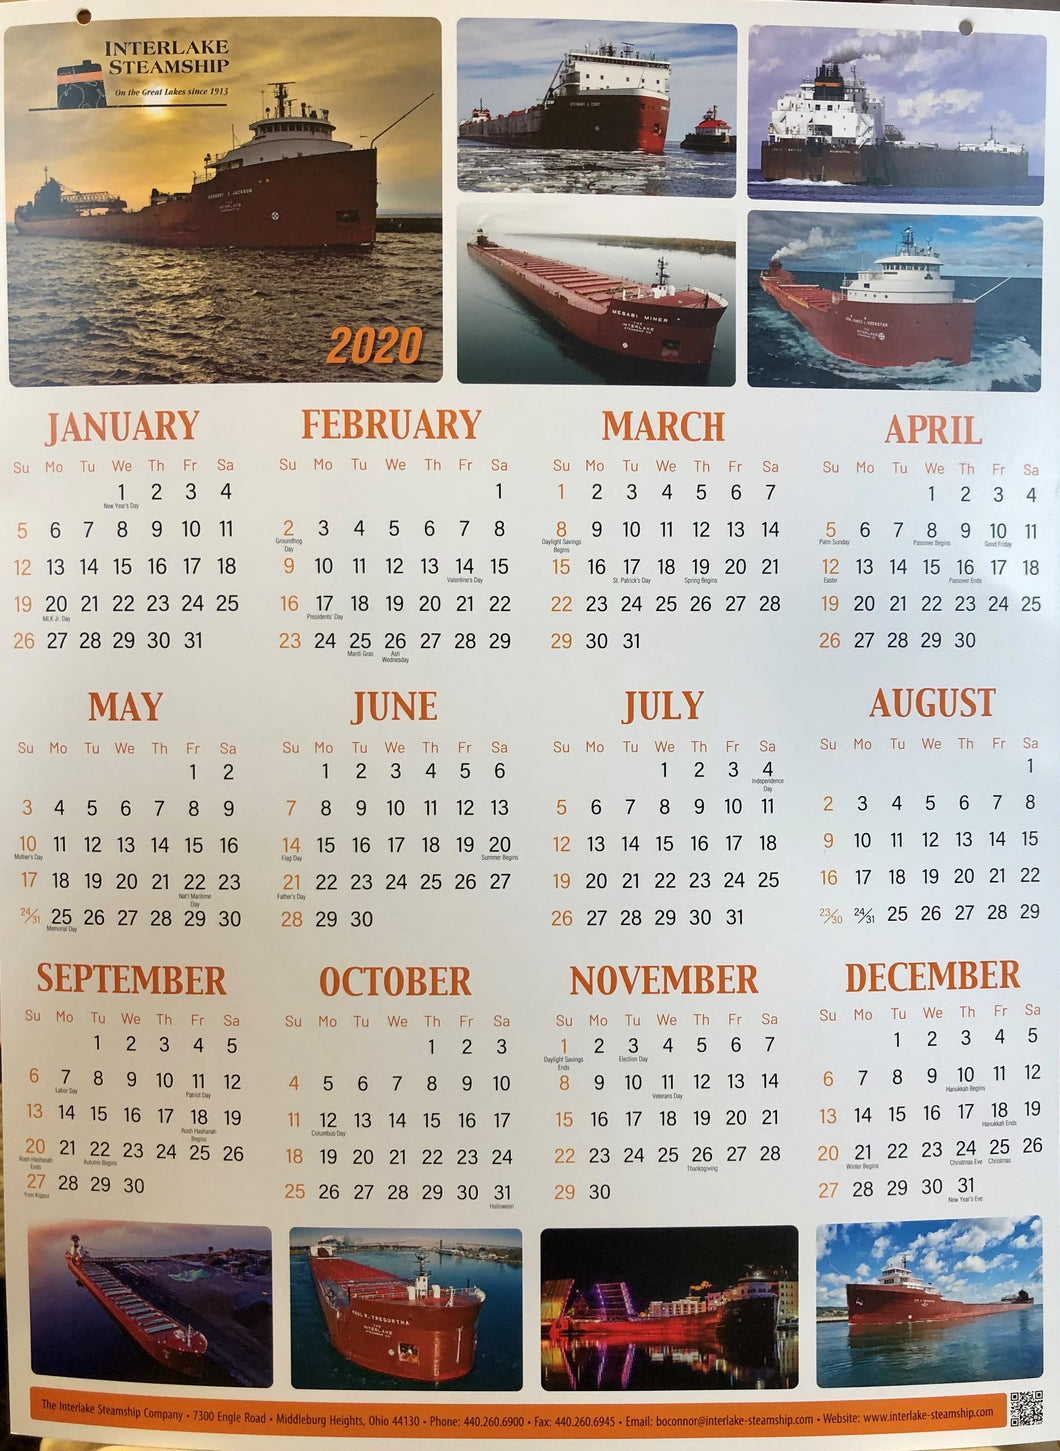 2020 Interlake Steamship Company Wall Calendar